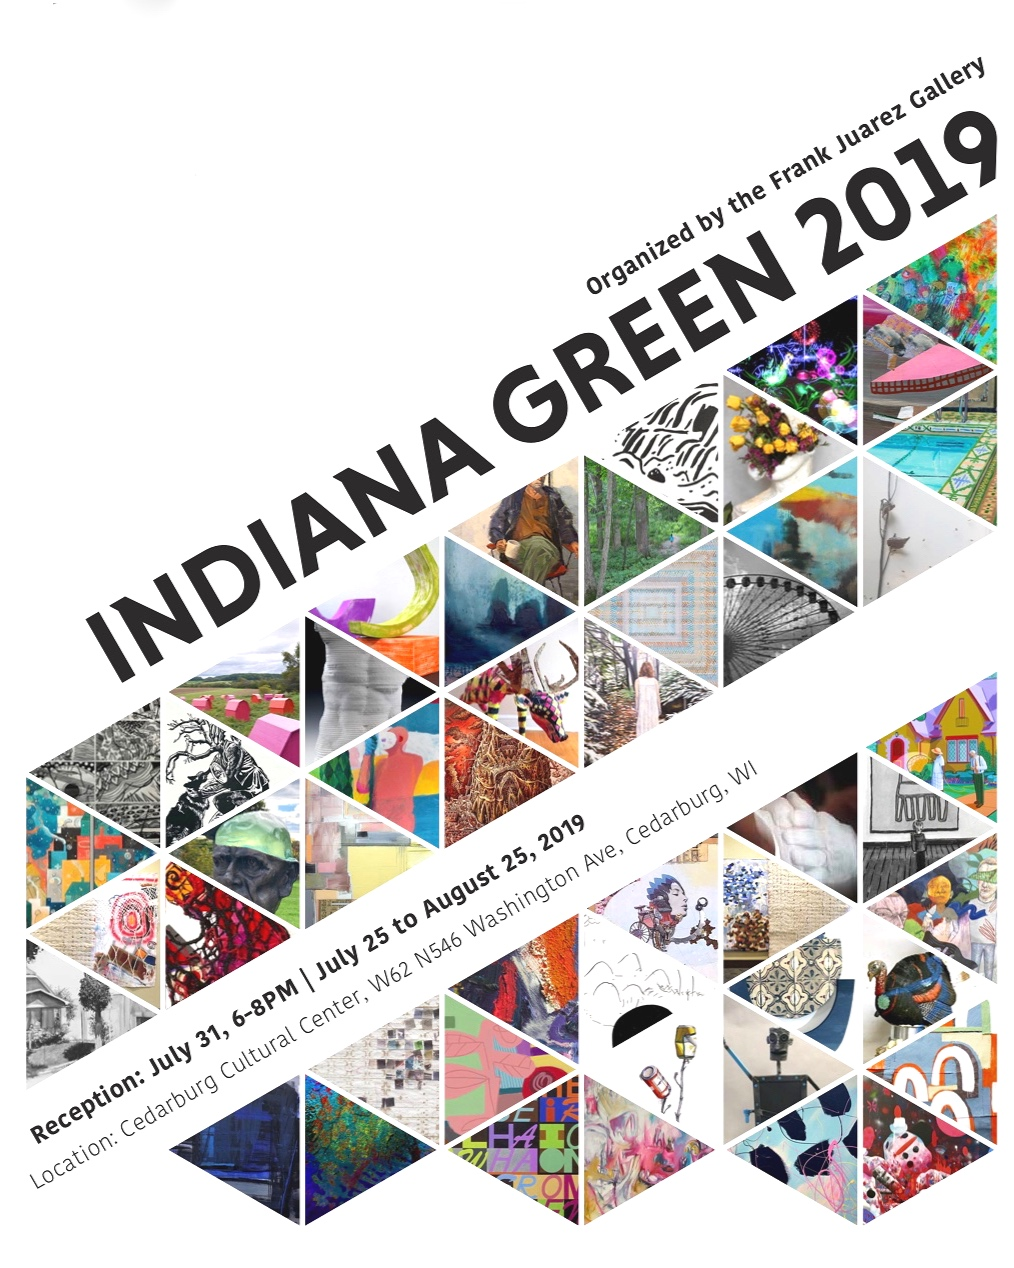 Indiana Green 2019 Catalog - In this 52-page PDF, is a representation of the artists' work in this anniversary exhibition at the Cedarburg Cultural Center. Over 100 pieces of art on exhibit. Exhibition runs from July 25 - August 25, 2019. Organized by the Frank Juarez Gallery.Foreword by Beth Zinsli, curator, Wriston Art Galleries, Lawrence UniversityLayout by Sally CarsonPhoto by Lois BielefeldImage courtesy of the artistsFREE to download